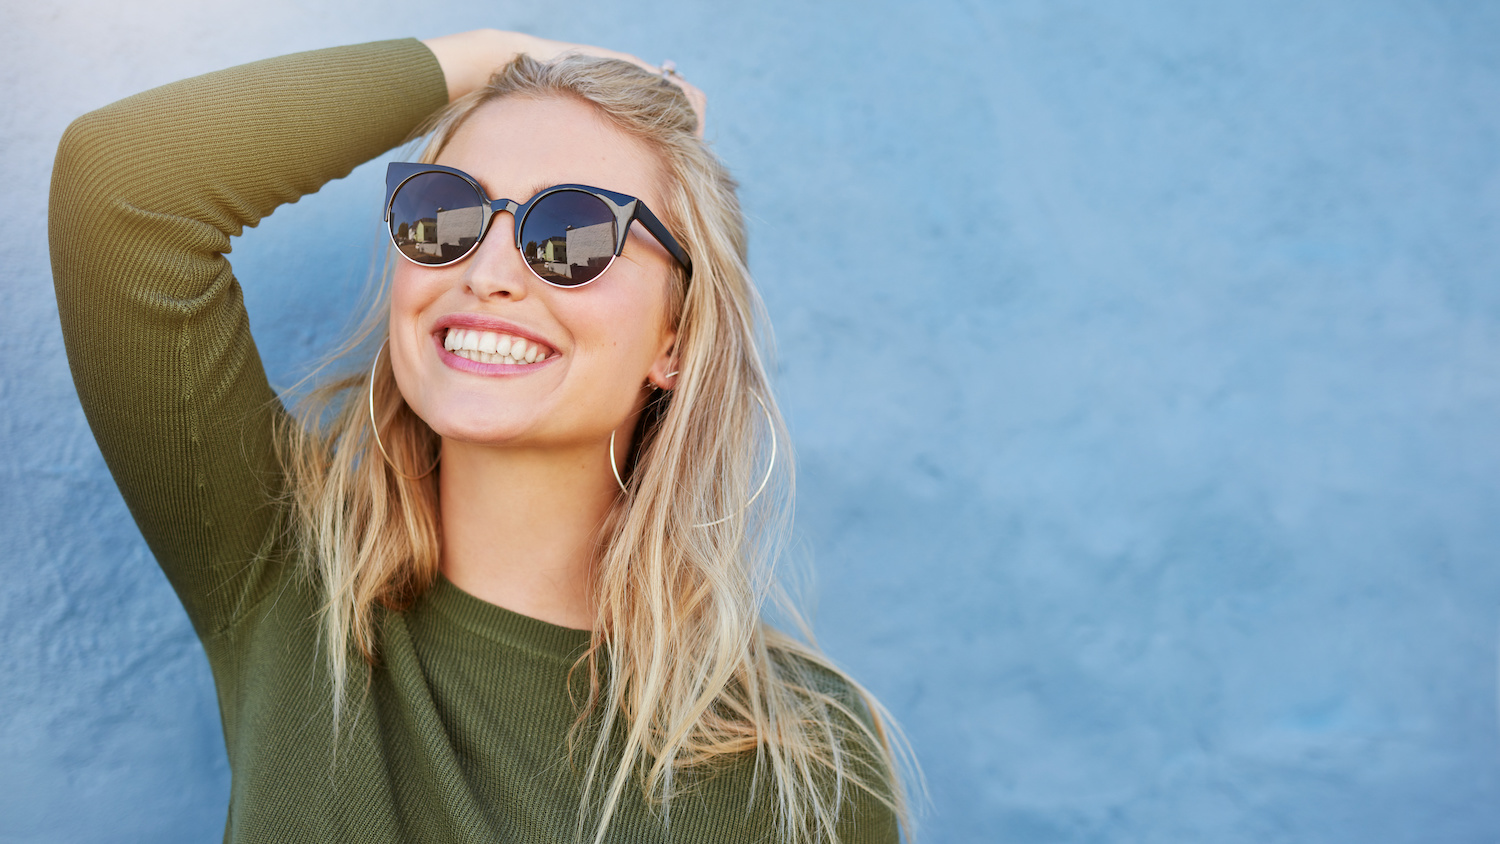 If you're interested in veneers in Lunenburg, Shirley, Groton, or Pepperhill, you may be wondering if this treatment is permanent or if it can be reversed in the future. So read on, get the answers you need in this blog from Nashoba Valley Dental, and make a more informed decision about your cosmetic dentistry treatment.